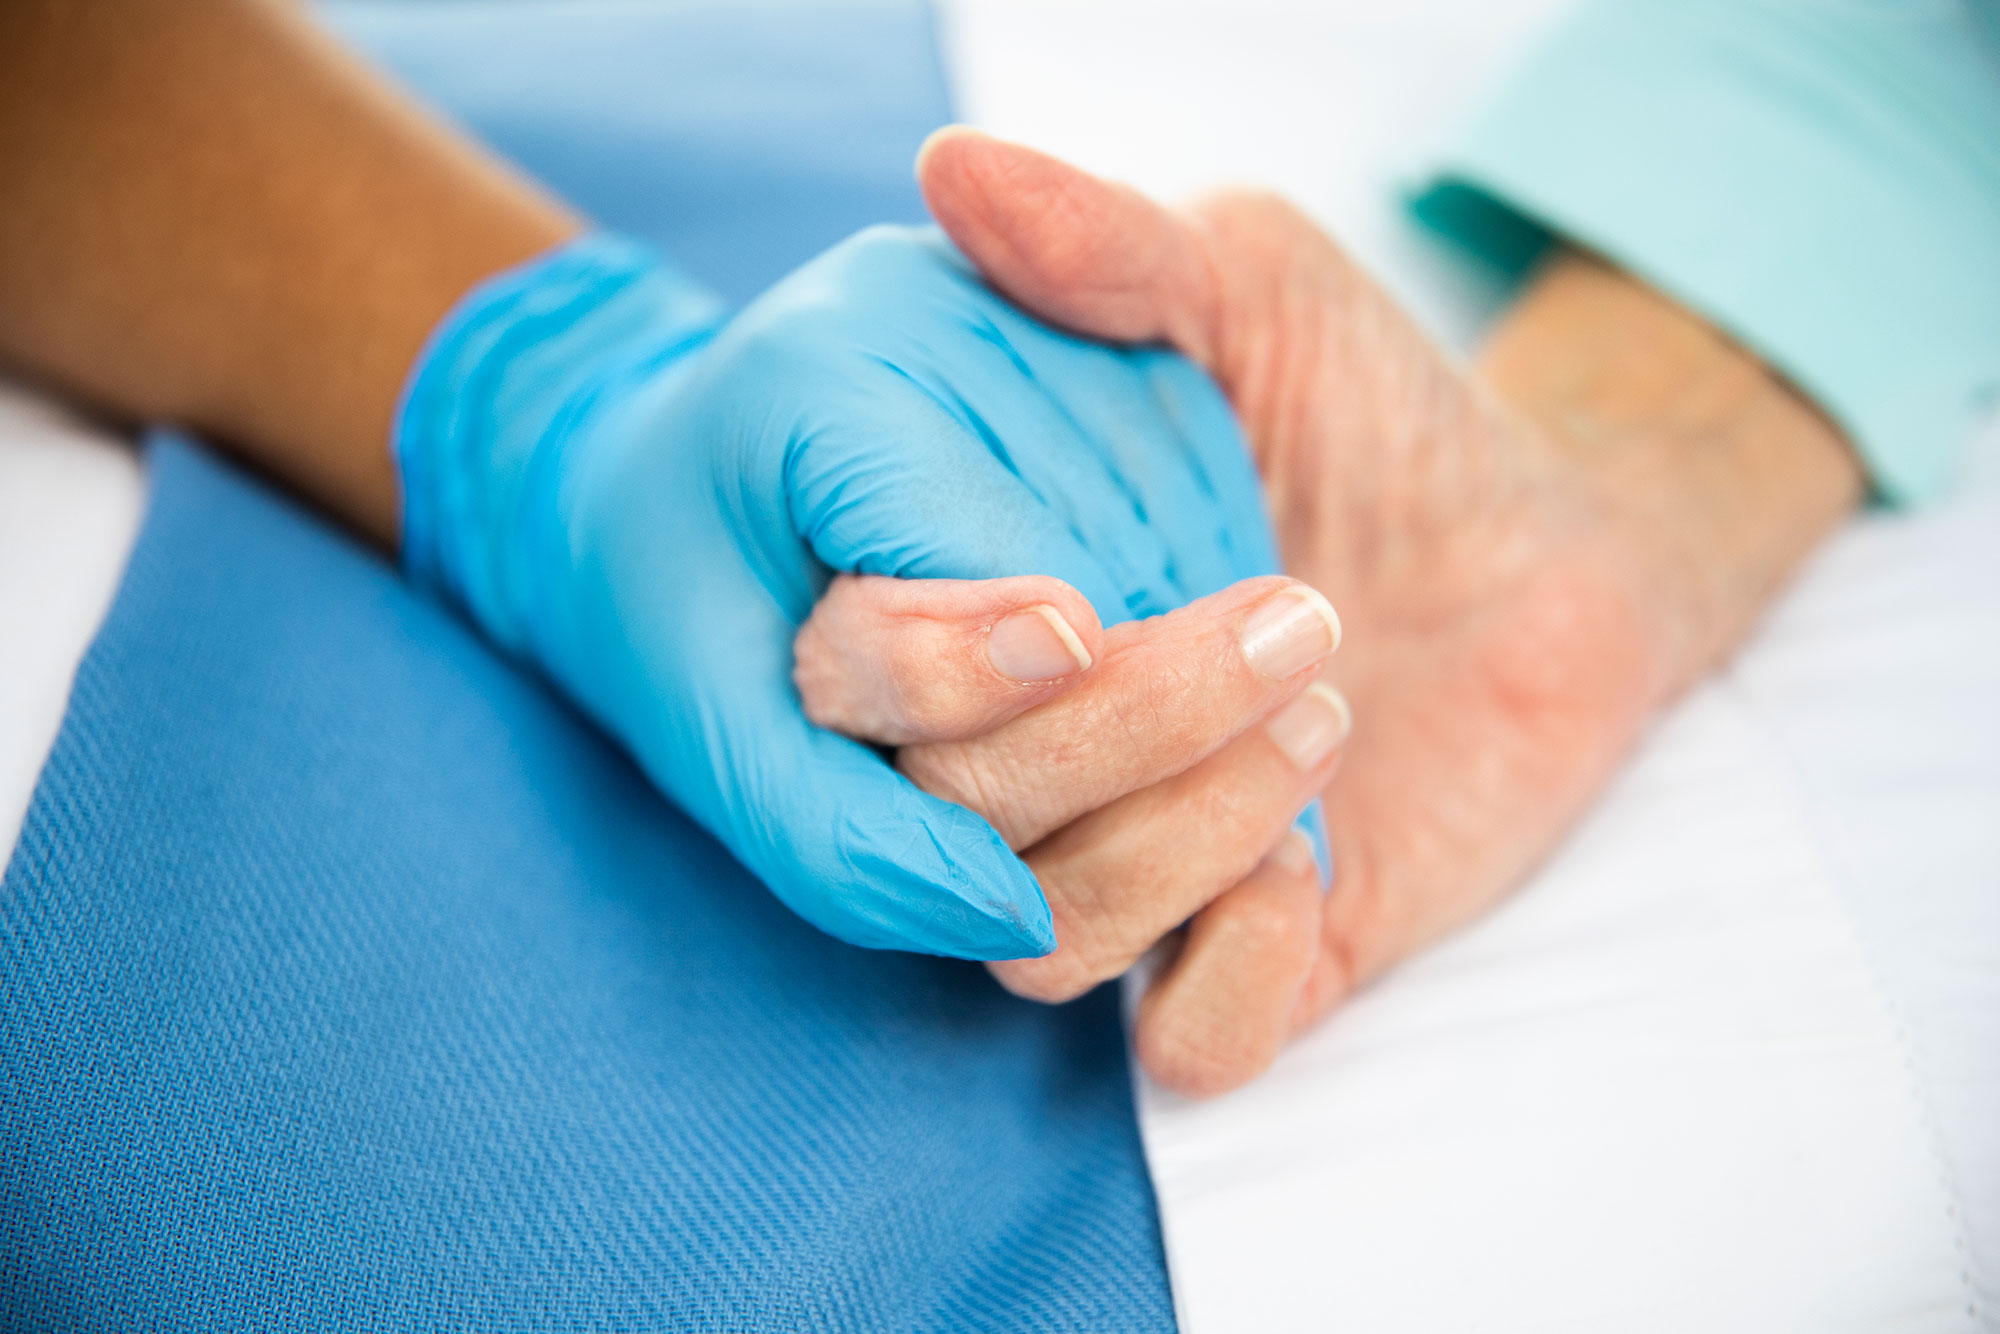 Close of Praise's gloved hands holding what appears to be the hands of a patient. Caption